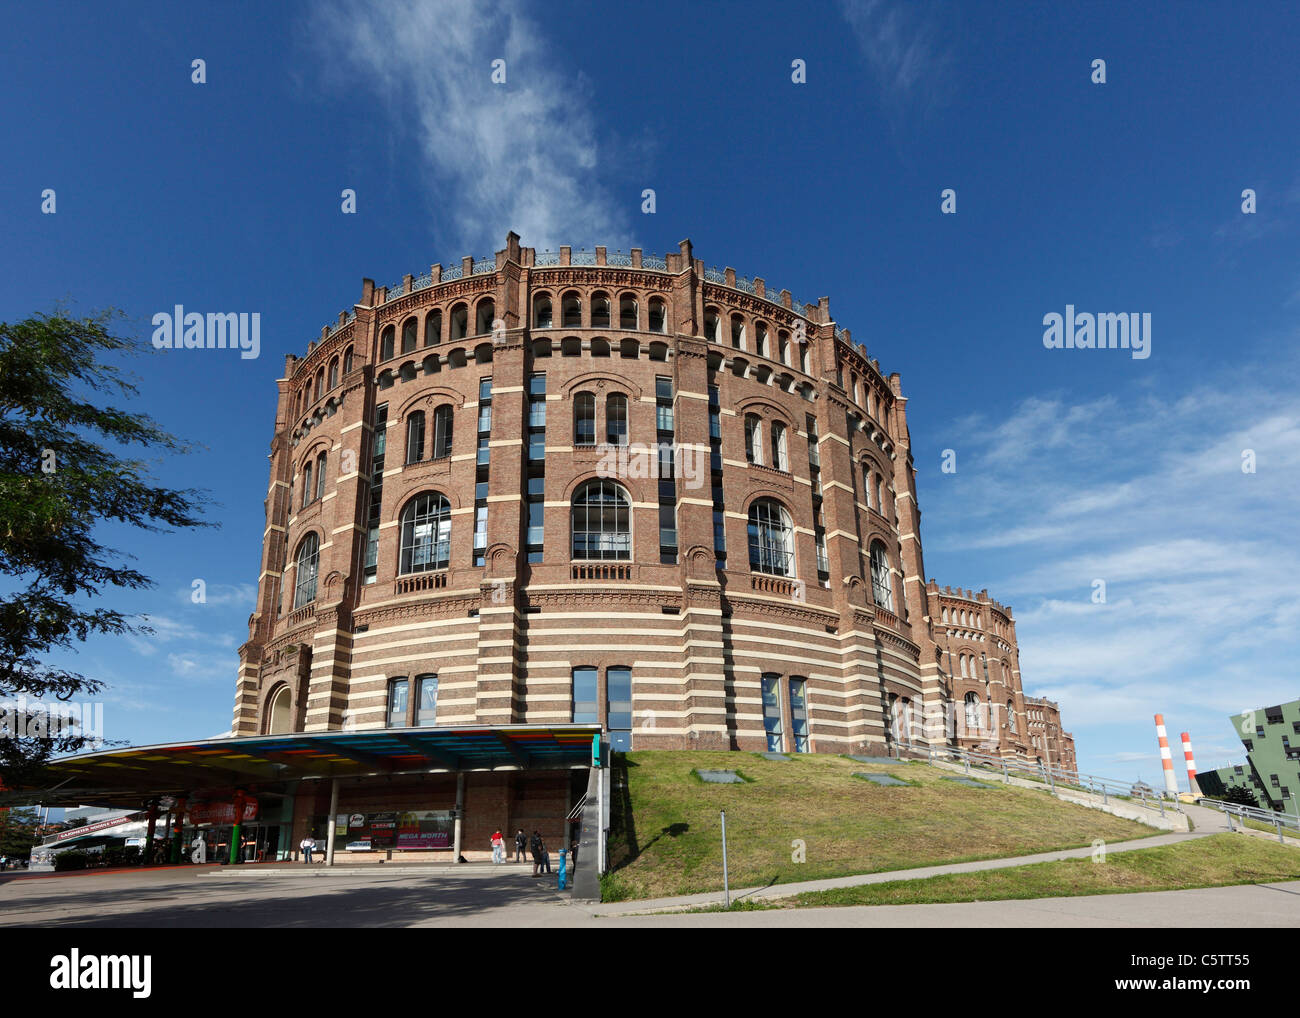 Austria, Vienna, View of gasometer city in simmering district - Stock Image